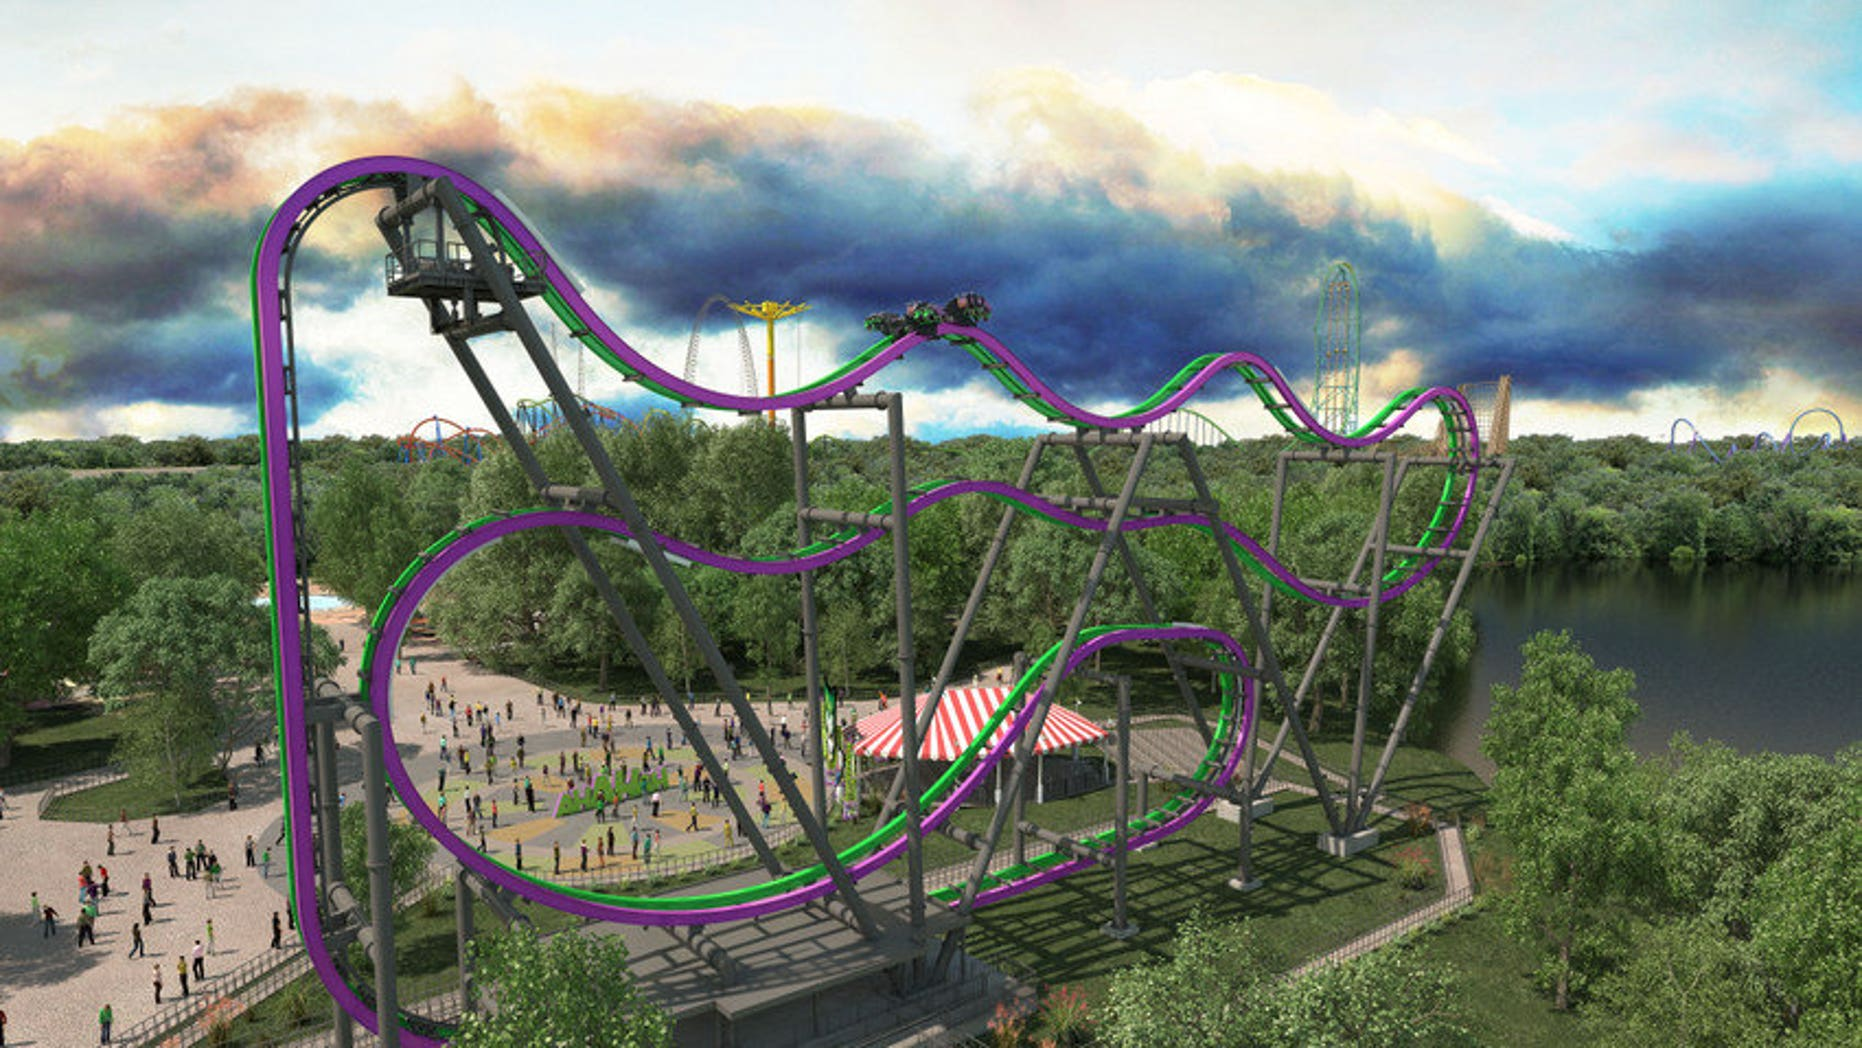 No laughing matter: Six Flags Joker coaster gets stuck with